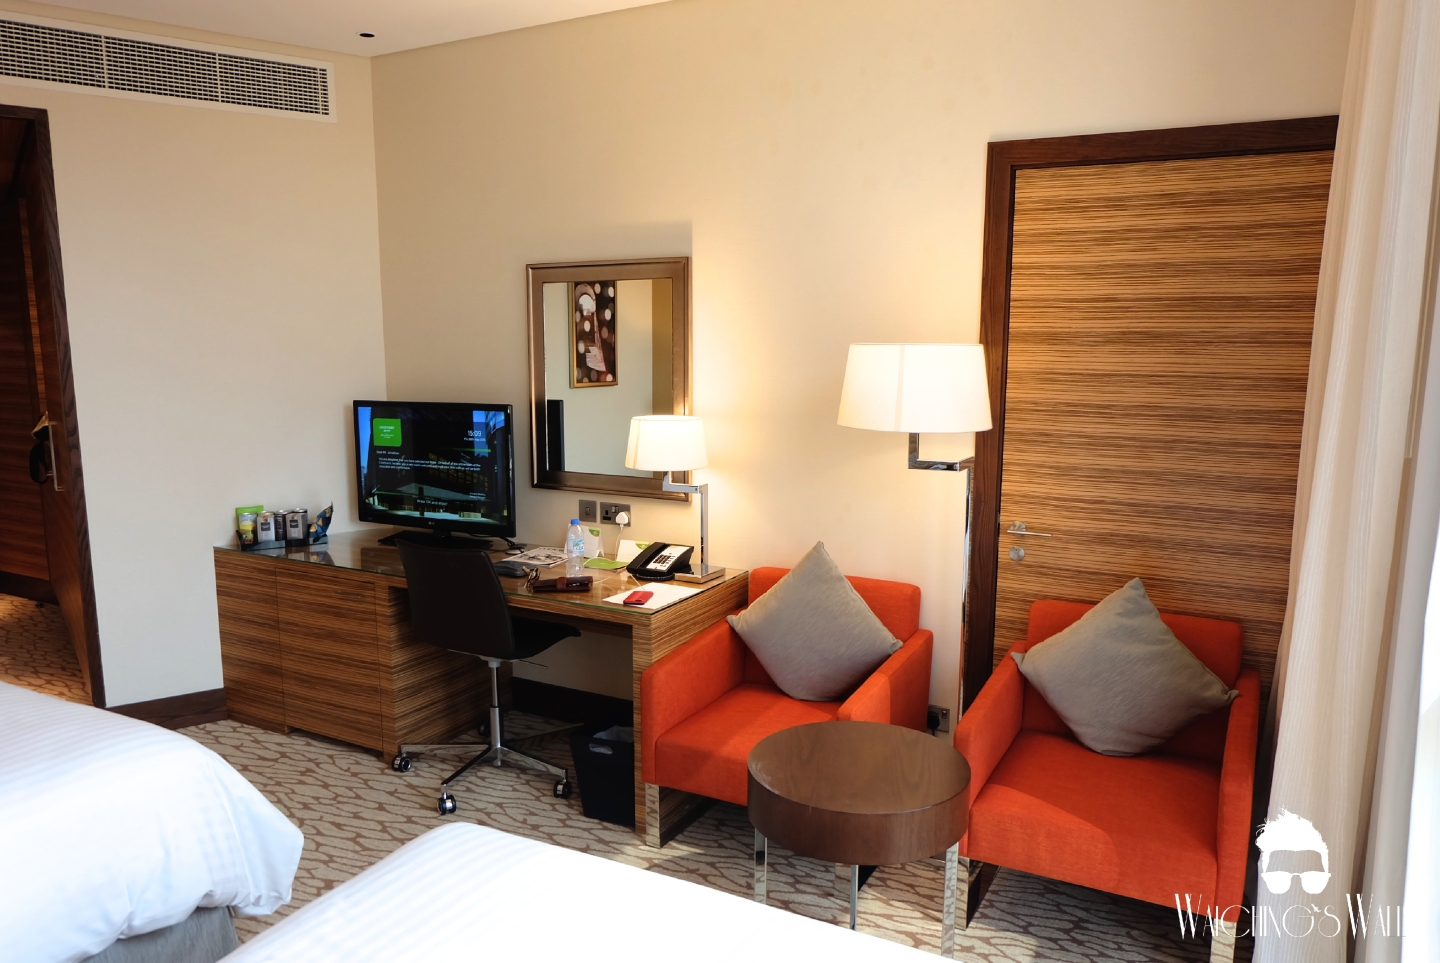 Courtyard Marriott Abu Dhabi_Wachings Wall-03